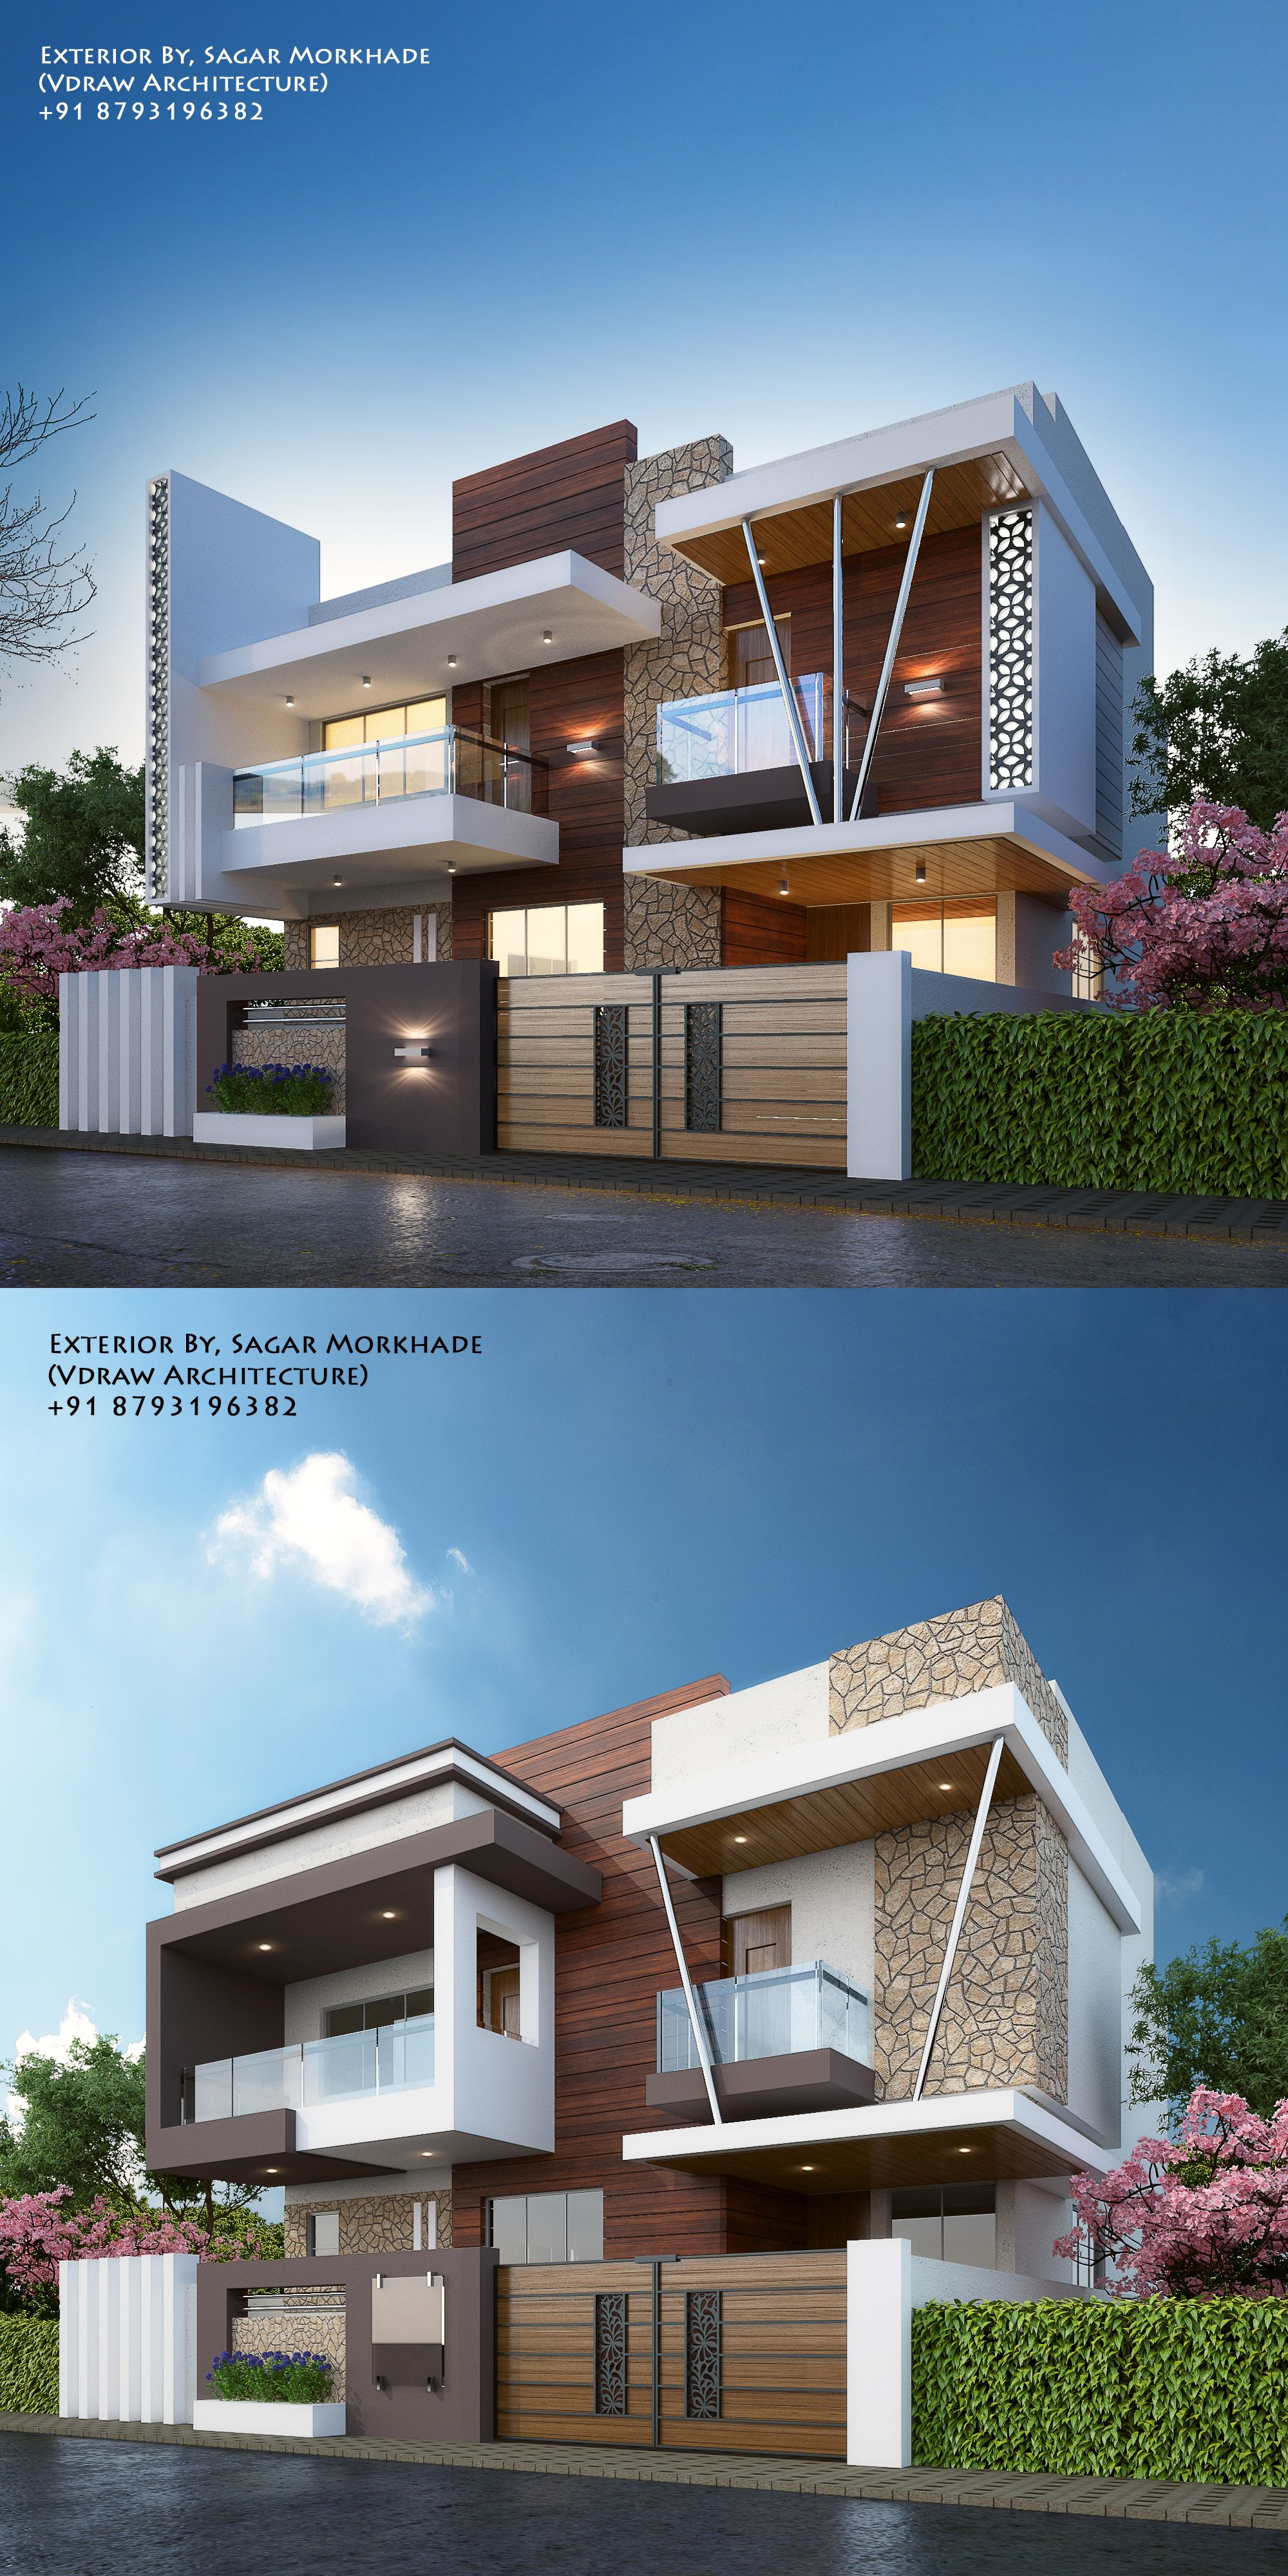 Home Design Ideas For 2019: Modern House Bungalow Exterior By, Ar.Sagar Morkhade